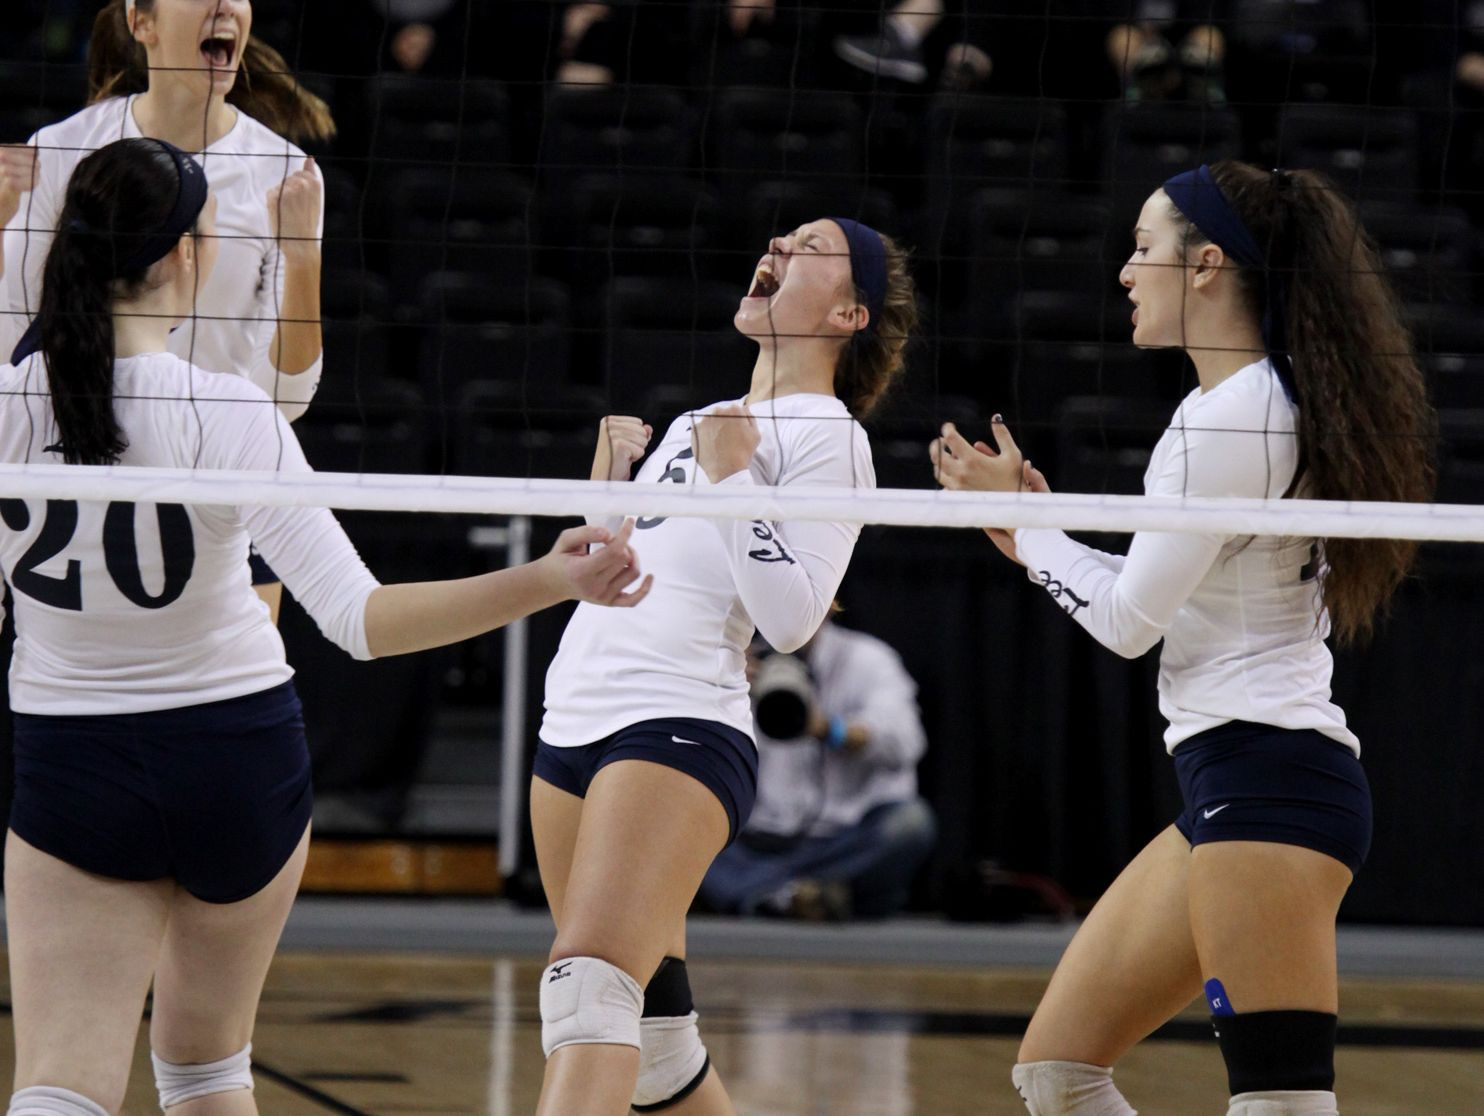 The Lee volleyball team celebrates a point during the Virginia High School League 2A Girls Volleyball State Championship held at the Virginia Commonwealth University''s Stuart C. Siegel Center in Richmond on Saturday November 19, 2016.